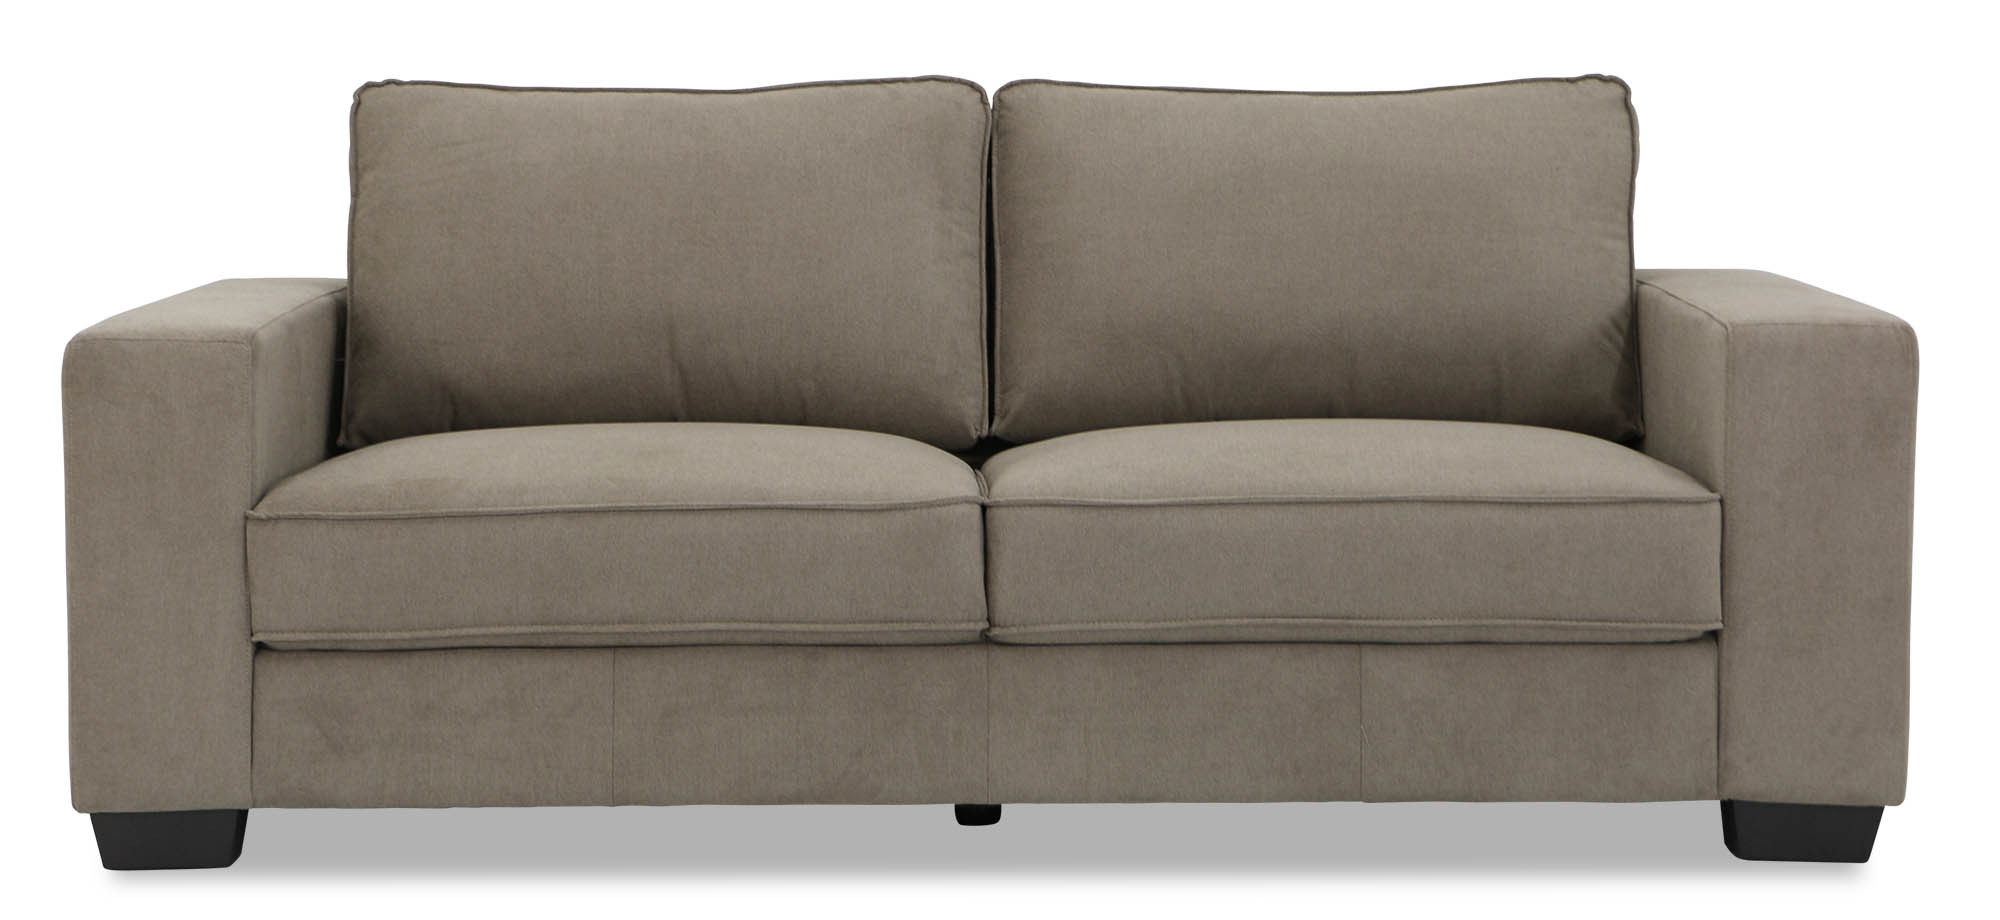 Verona 3 seater sofa taupe furniture home d cor for Taupe couch decor